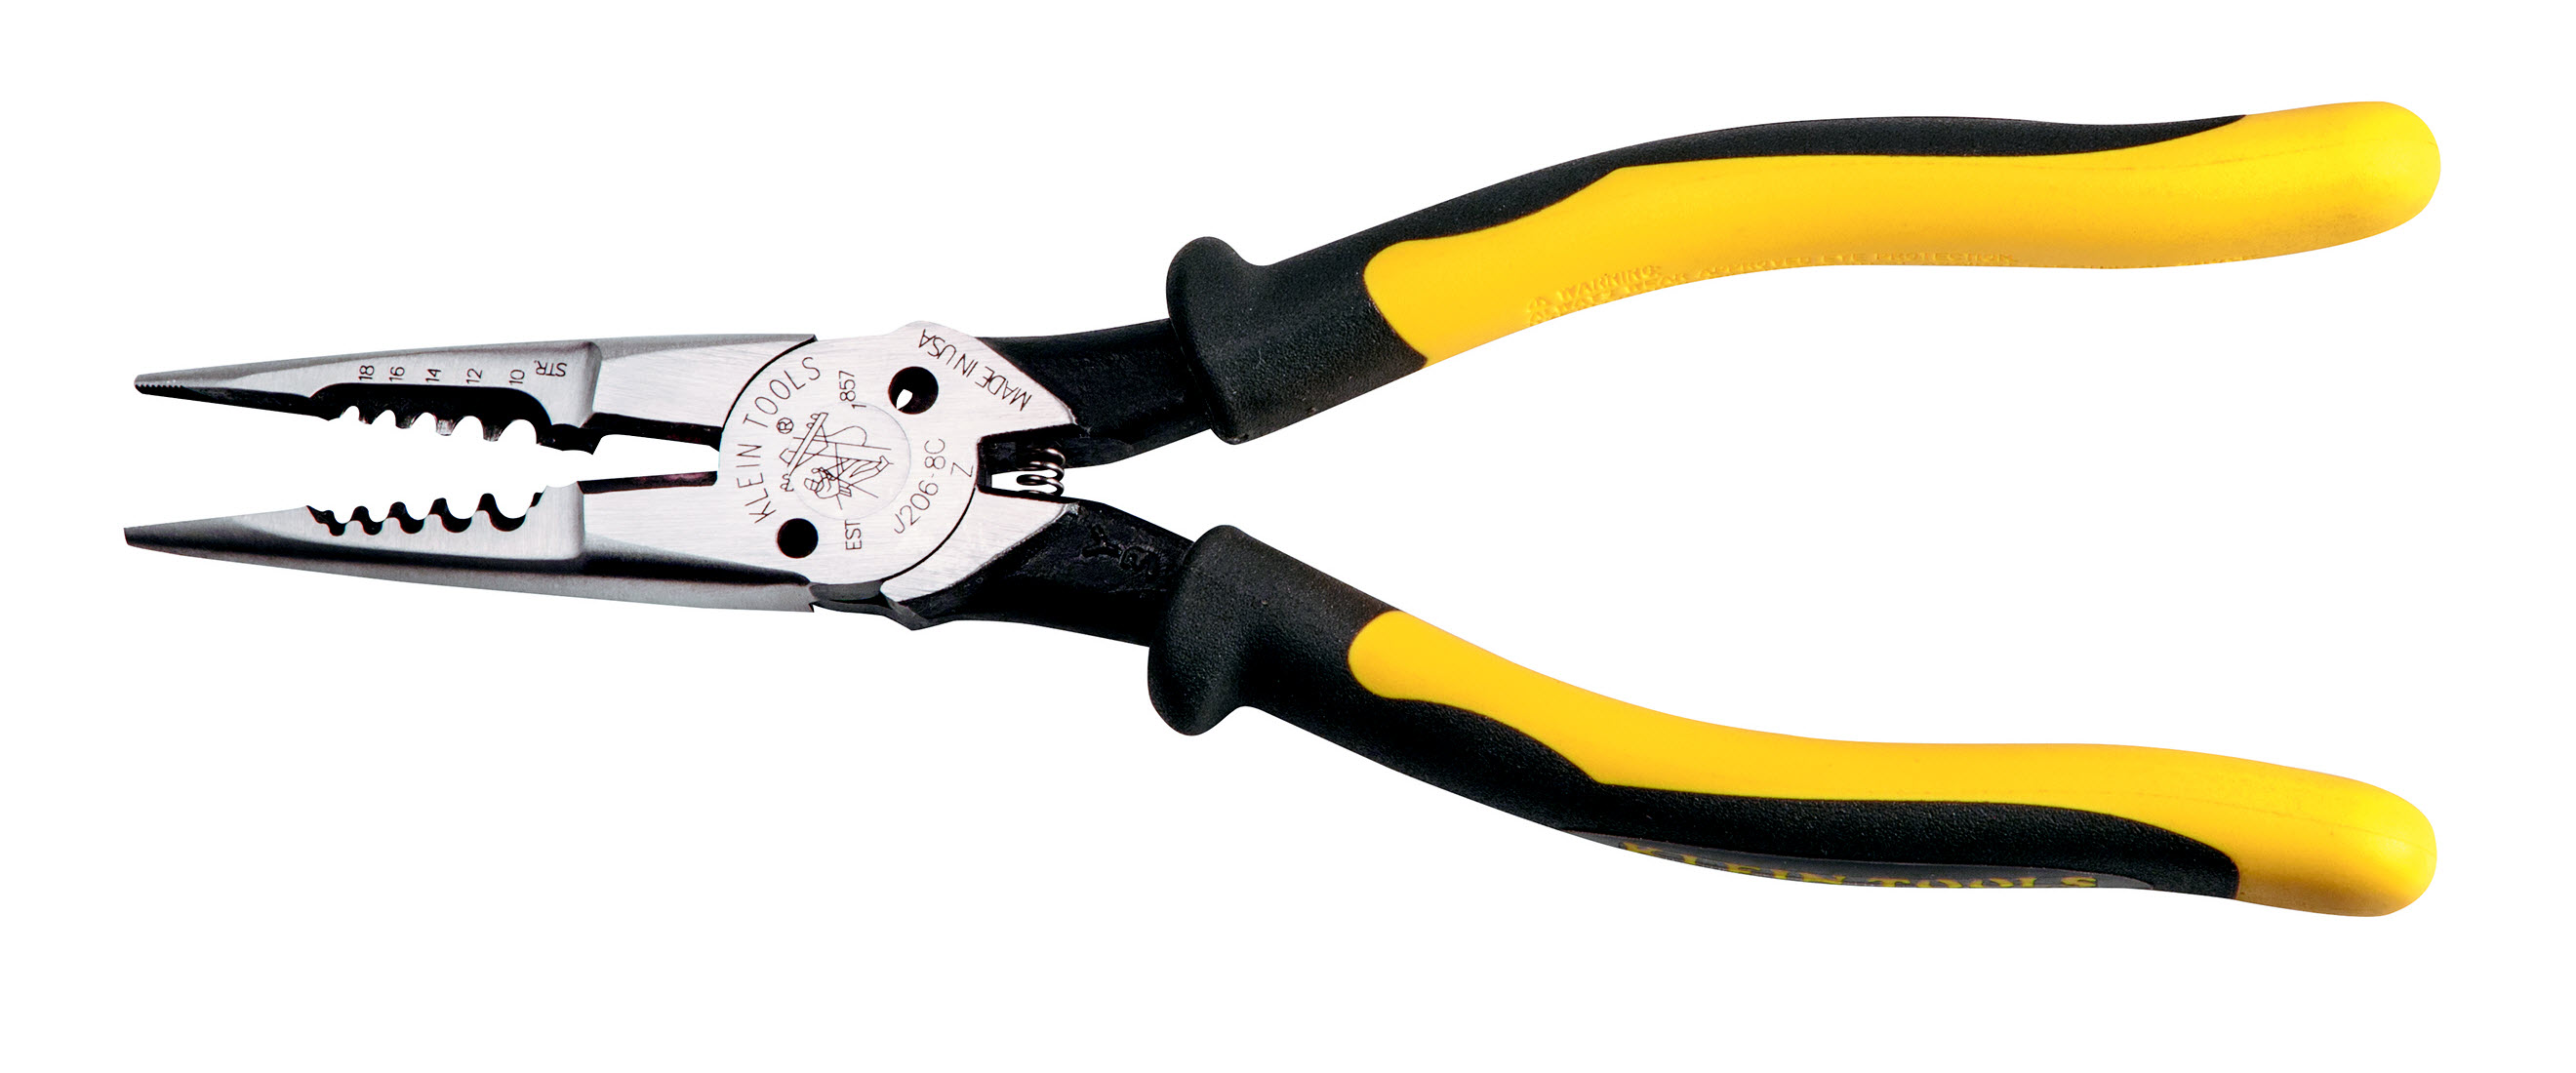 Klein Tools All Purpose Pliers Concrete Construction